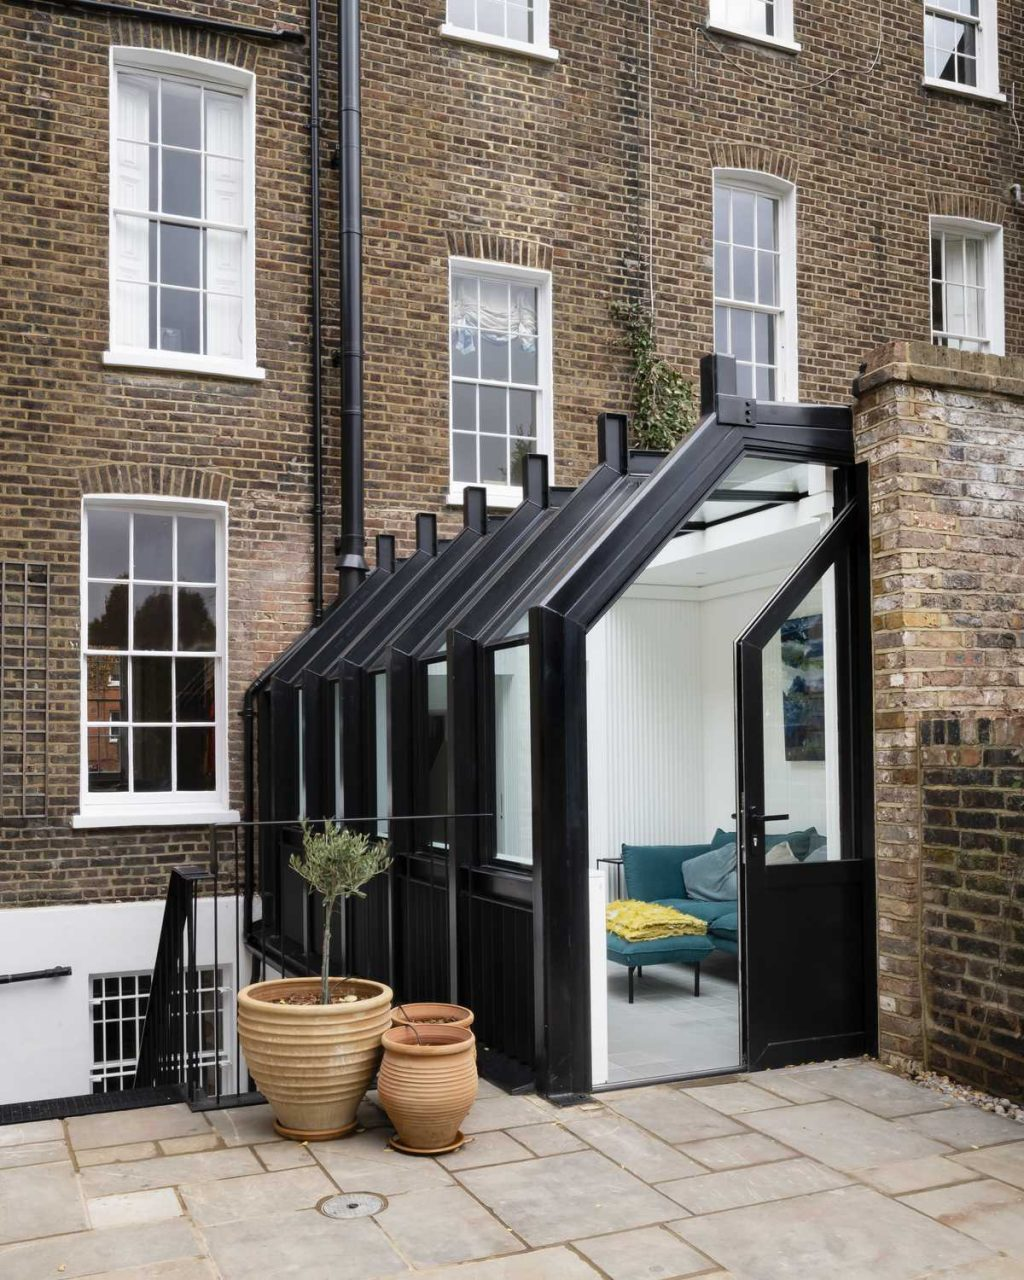 A glasshouse re-connects a Listed townhouse to its garden